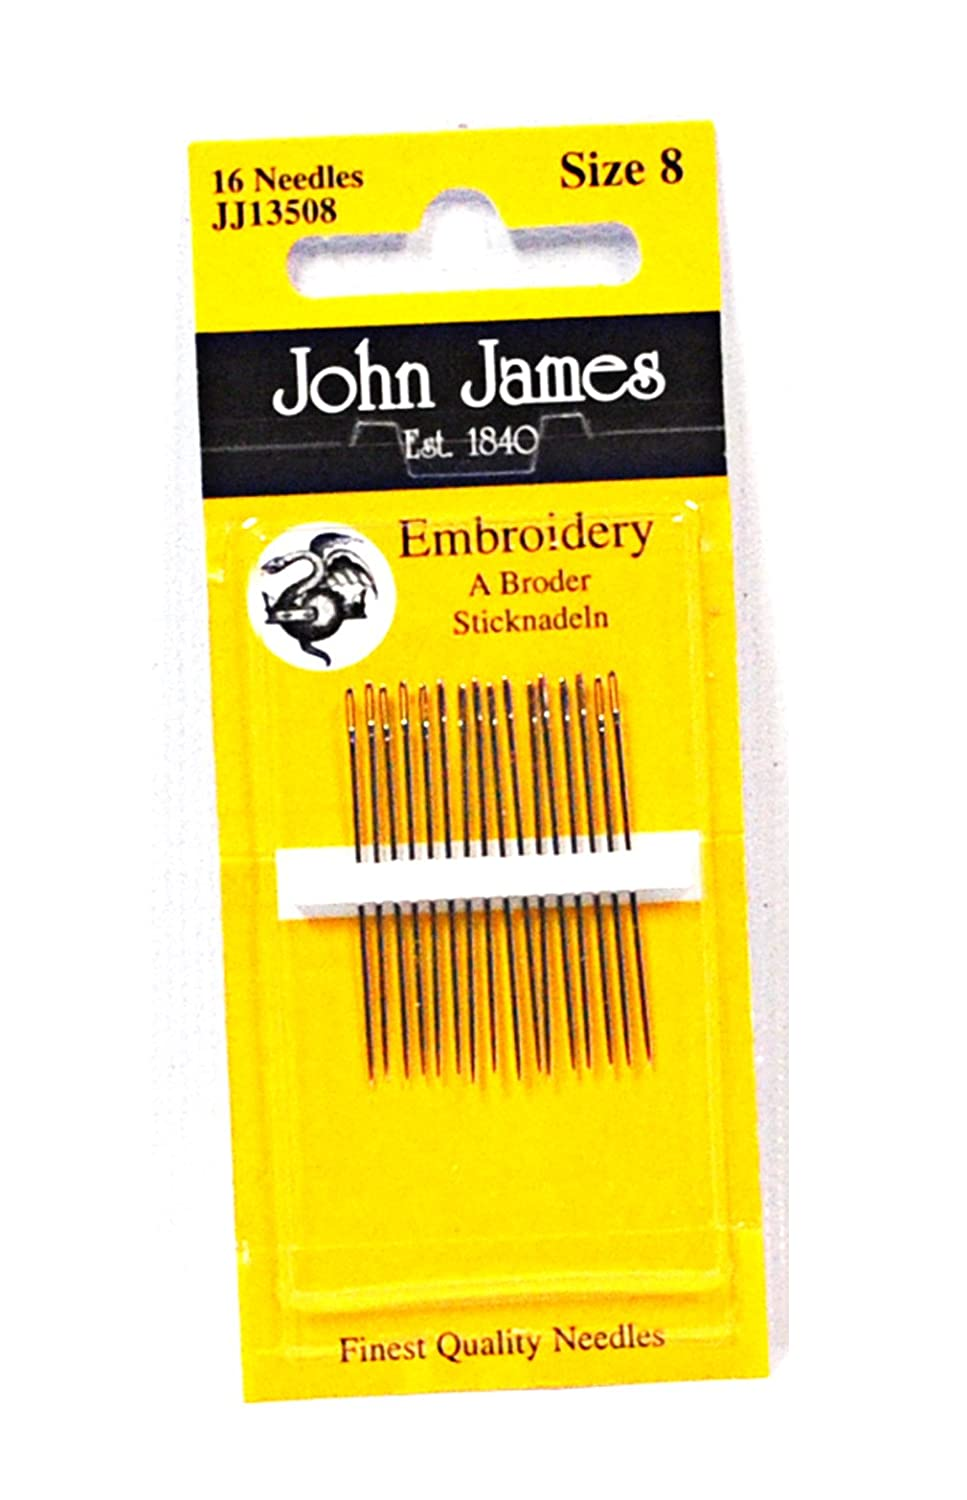 John James Embroidery Needles Size 8 333302487